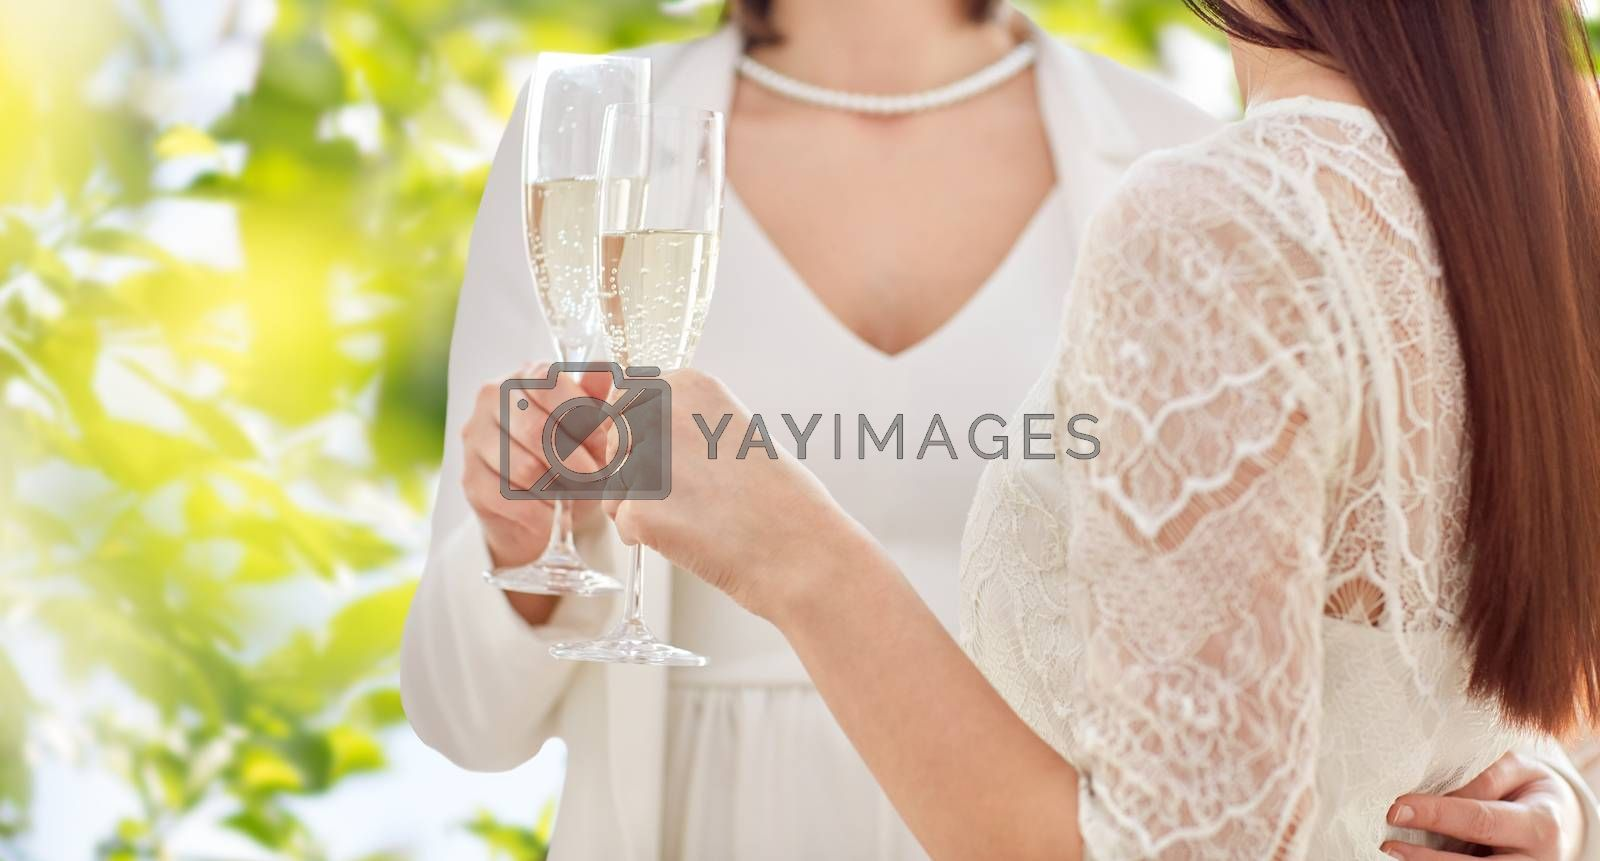 people, homosexuality, same-sex marriage, celebration and love concept - close up of happy married lesbian couple holding and clinking champagne glasses over green tree leavers background